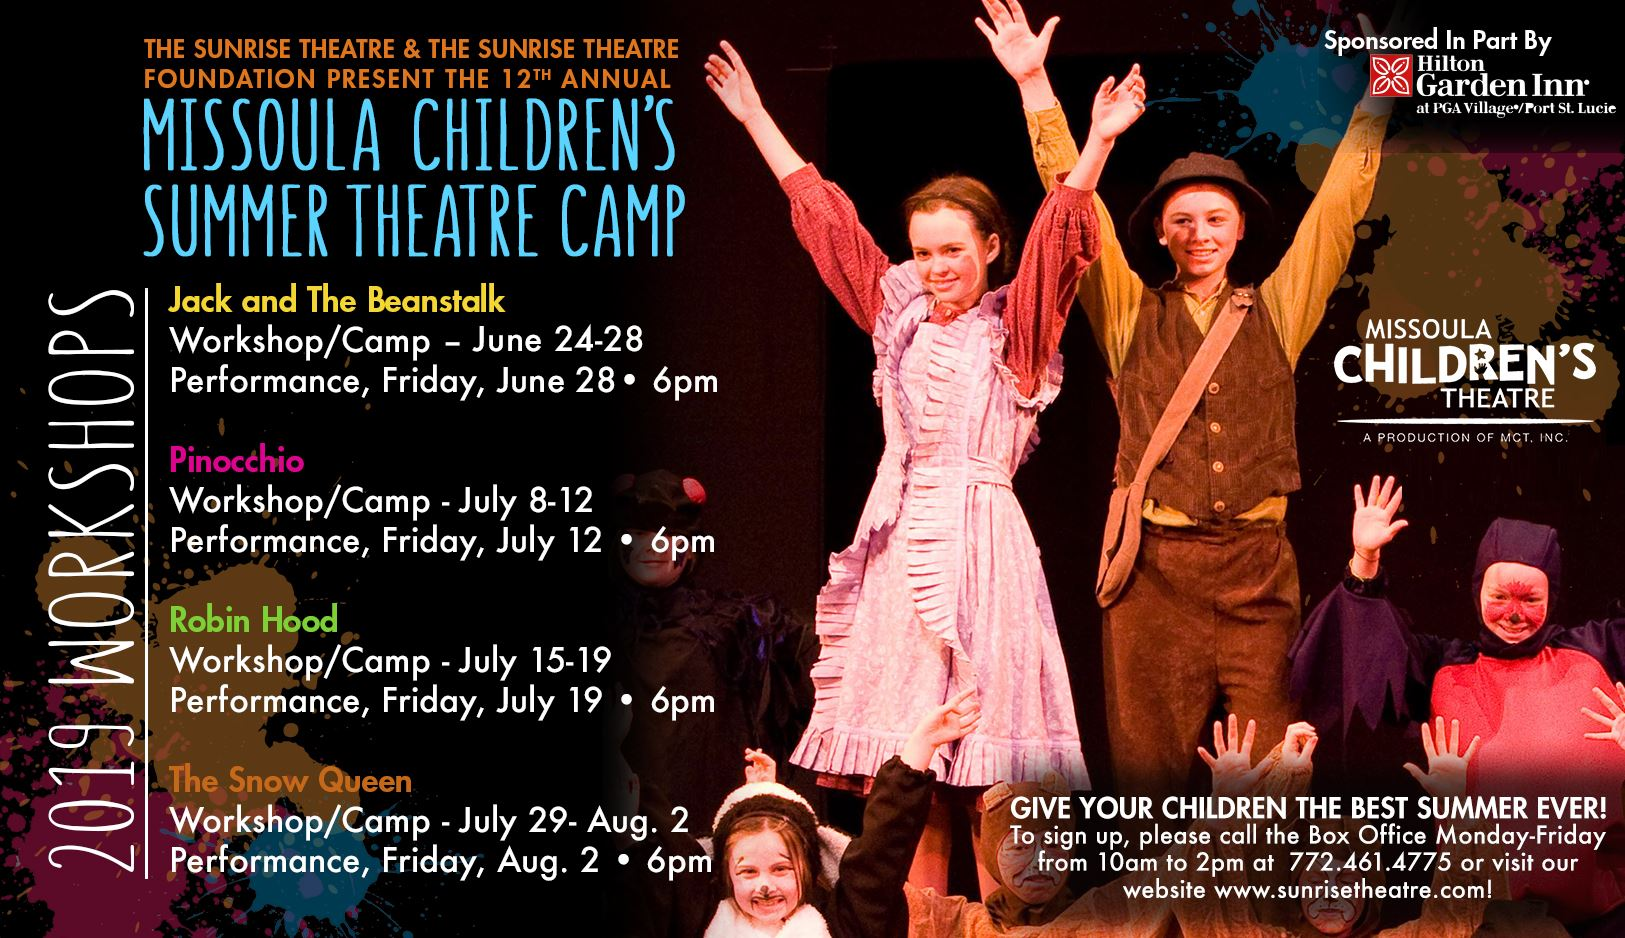 MissoulaChildrensTheatre-workshops-2019